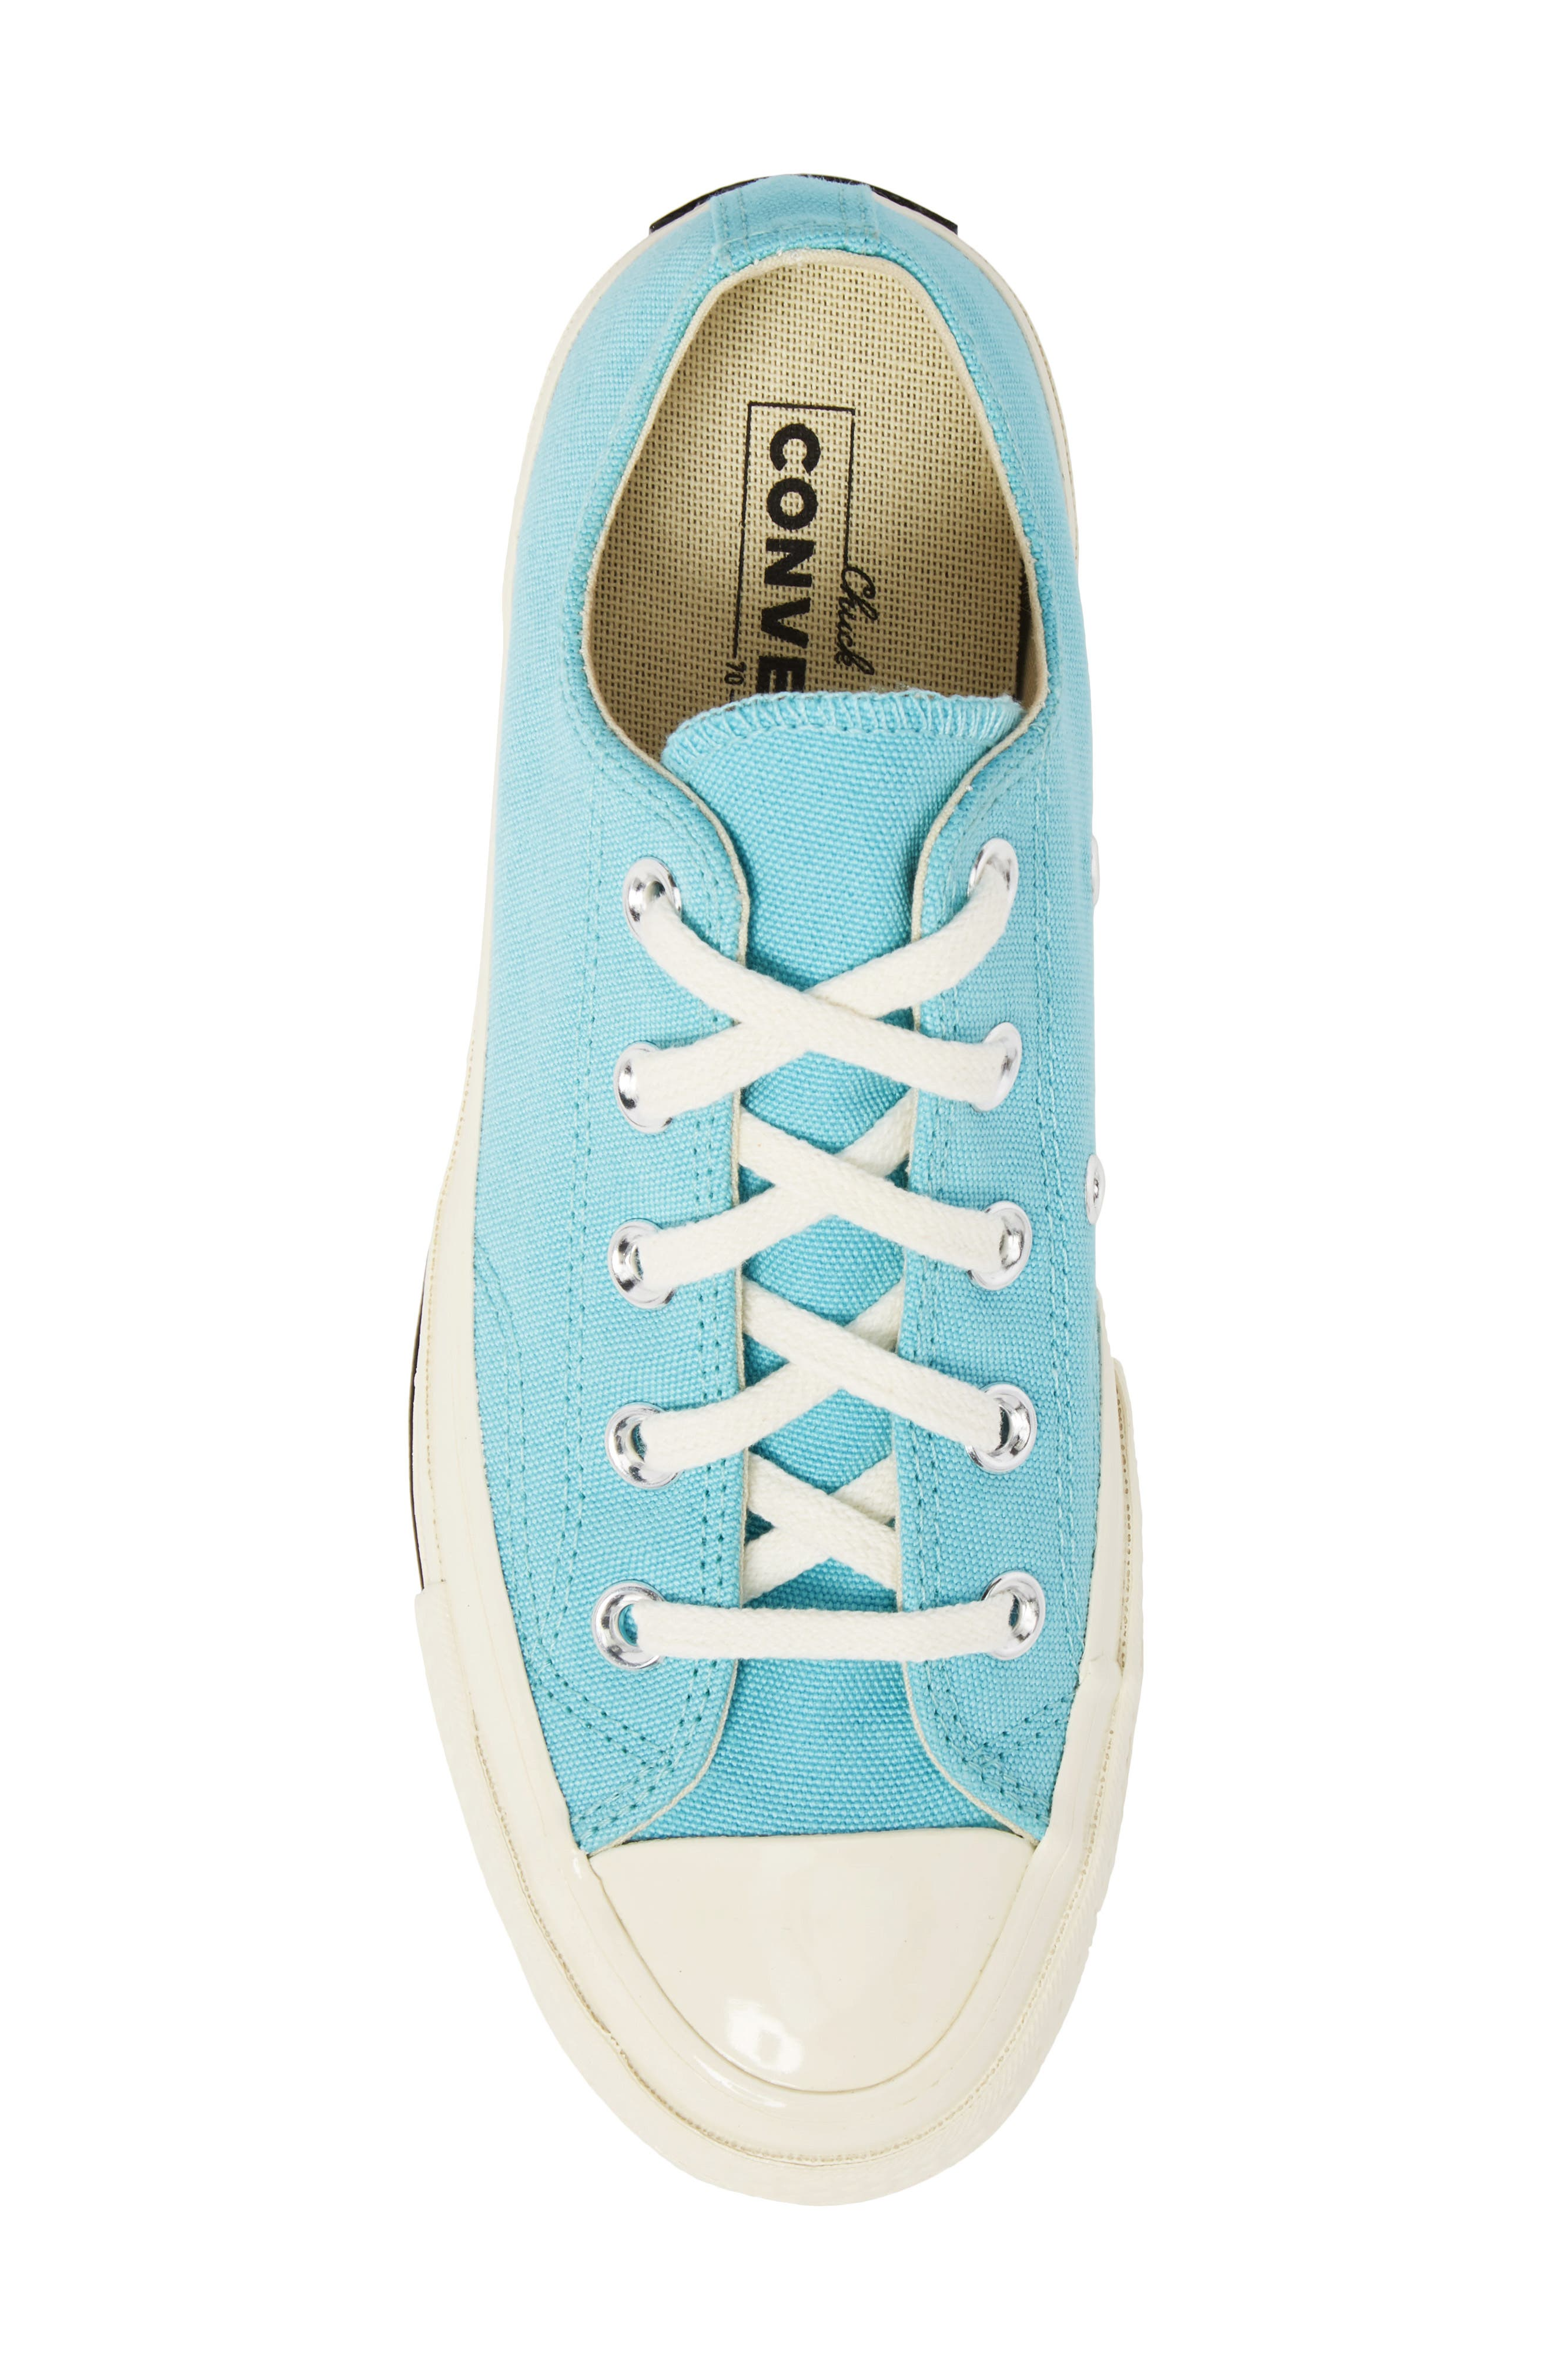 Chuck Taylor<sup>®</sup> All Star<sup>®</sup> '70s Brights Low Top Sneaker,                             Alternate thumbnail 5, color,                             Bleached Aqua